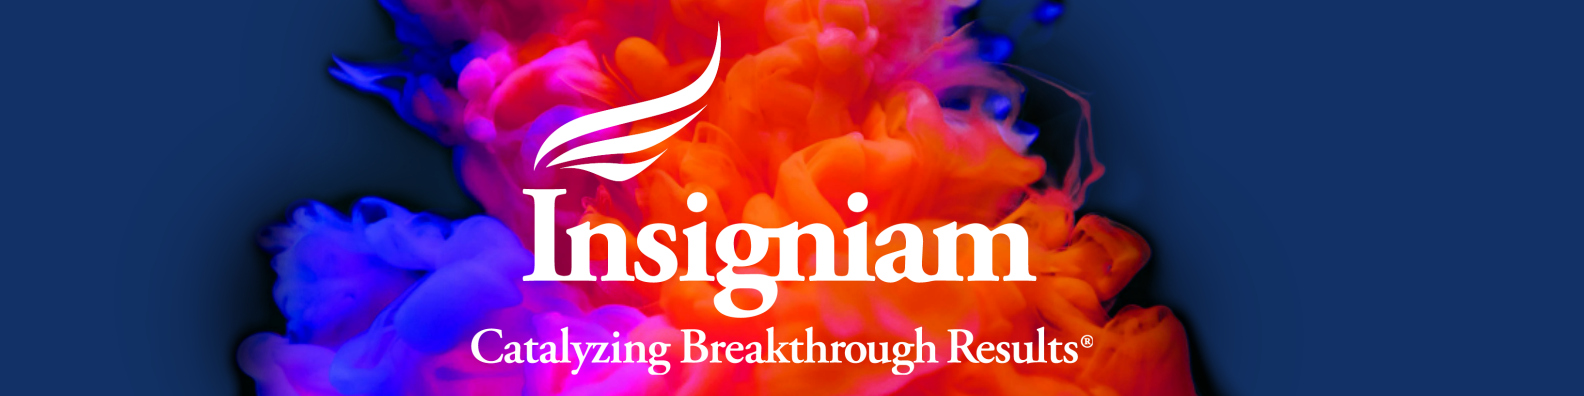 Insigniam Expands International Presence with Strategic New Hires